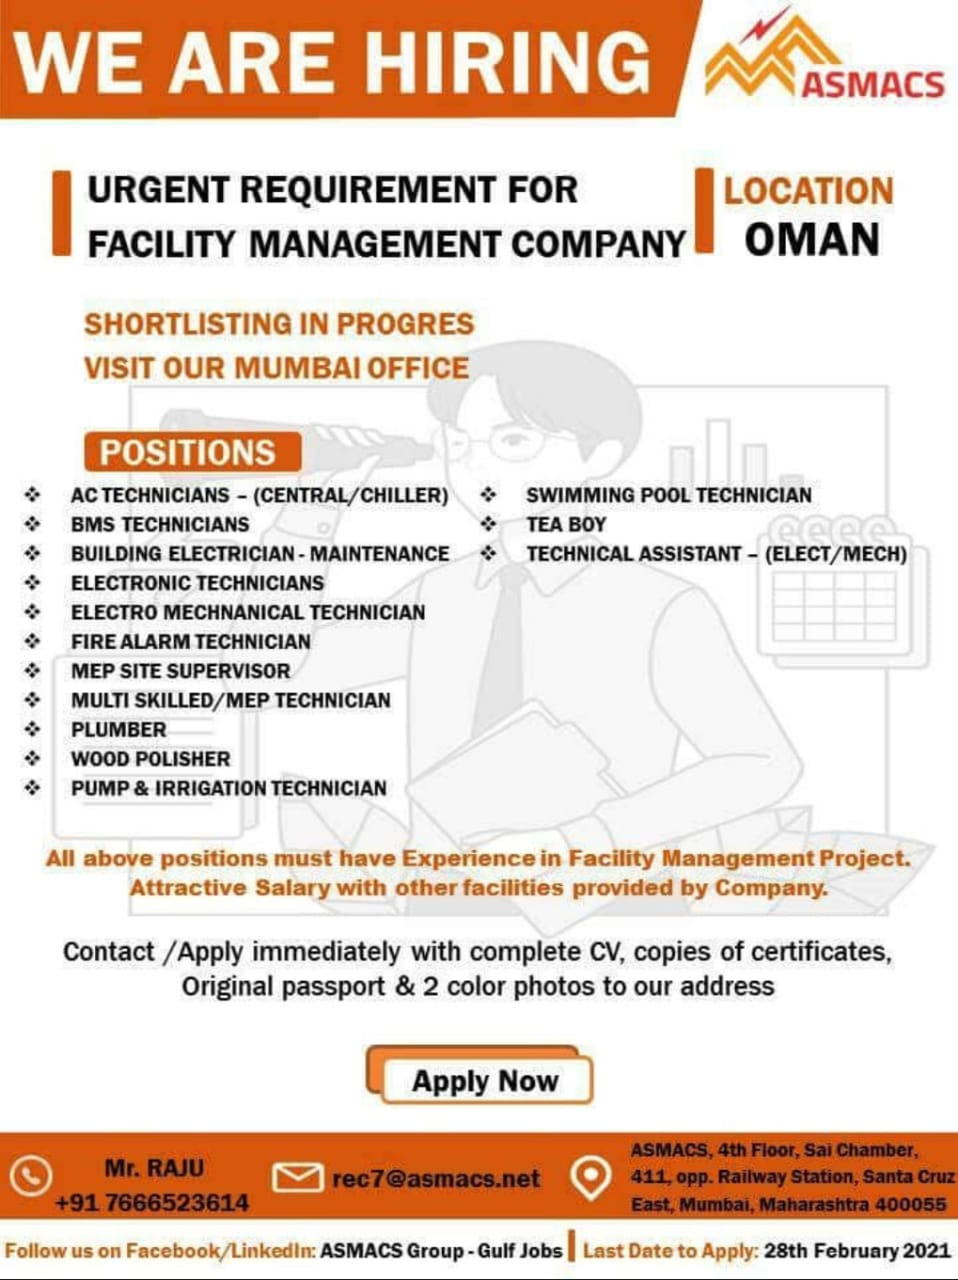 URGENT REQUIREMENT FOR FACILITY MANAGEMENT COMPANY OMAN